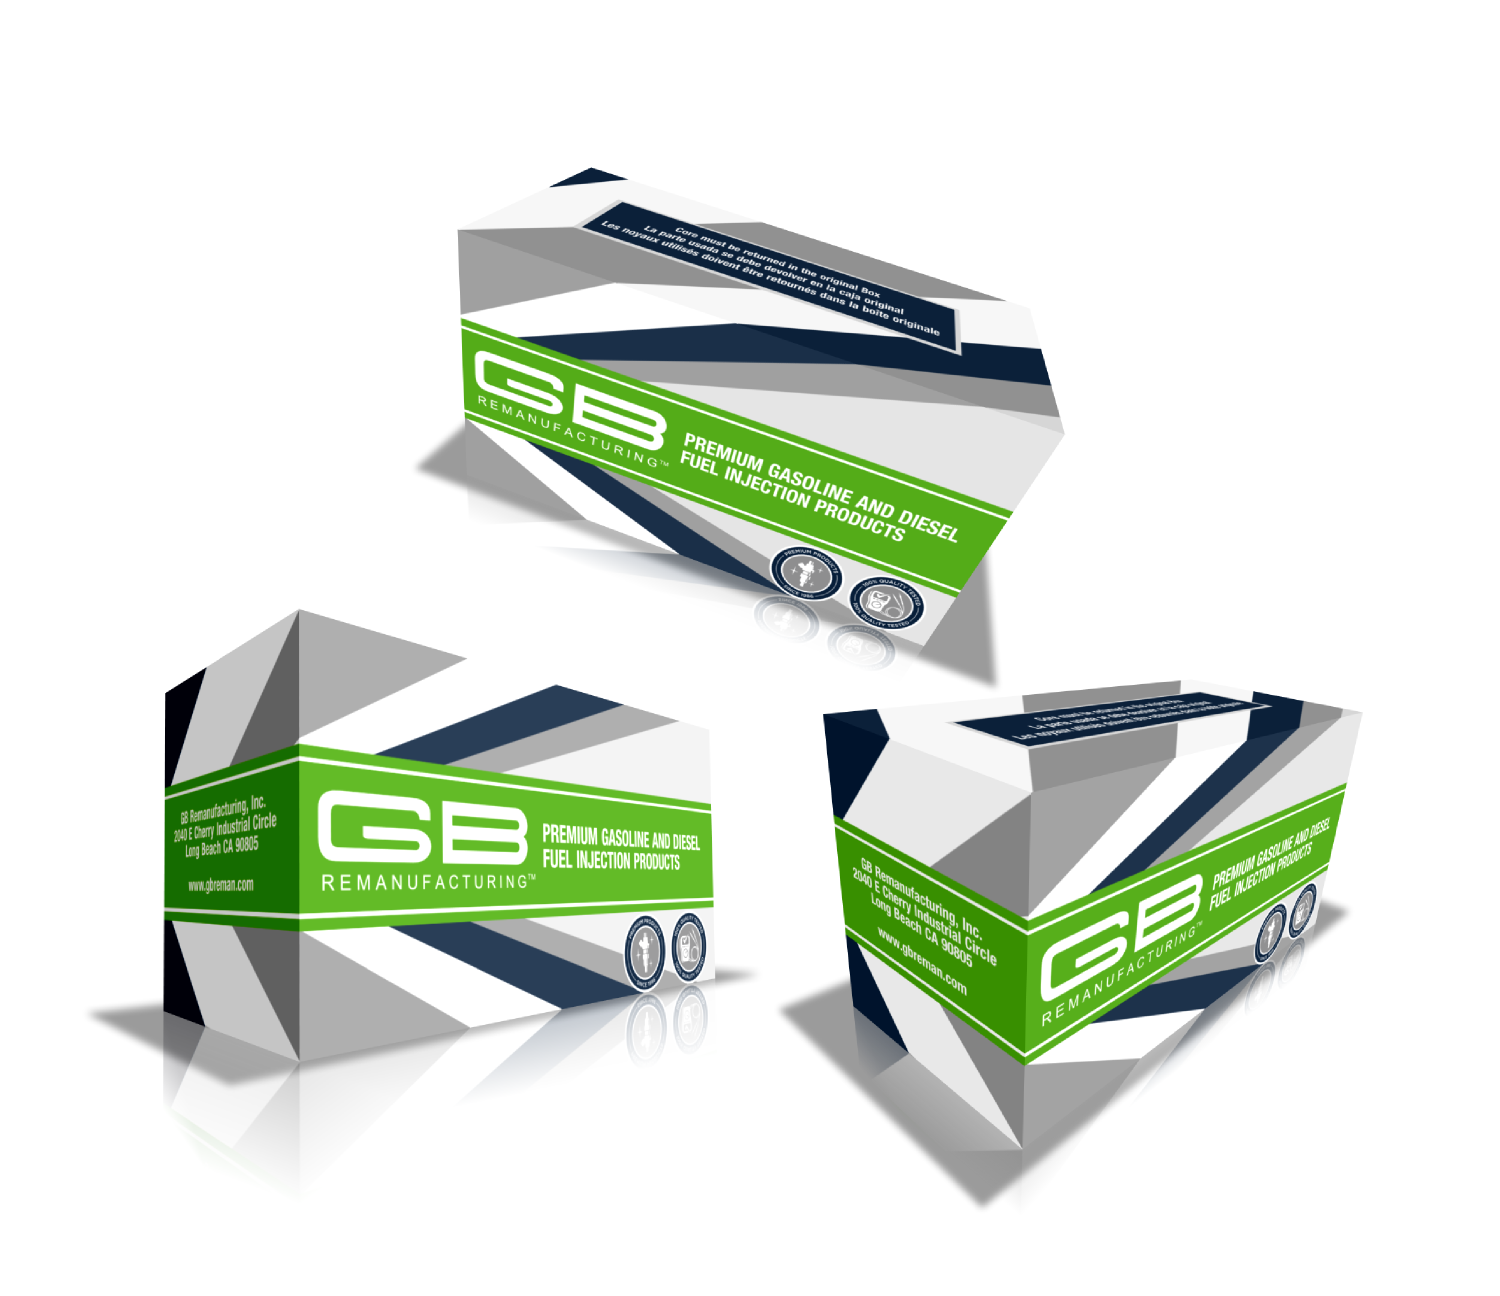 Upmarket, Serious, Automotive Packaging Design for GB